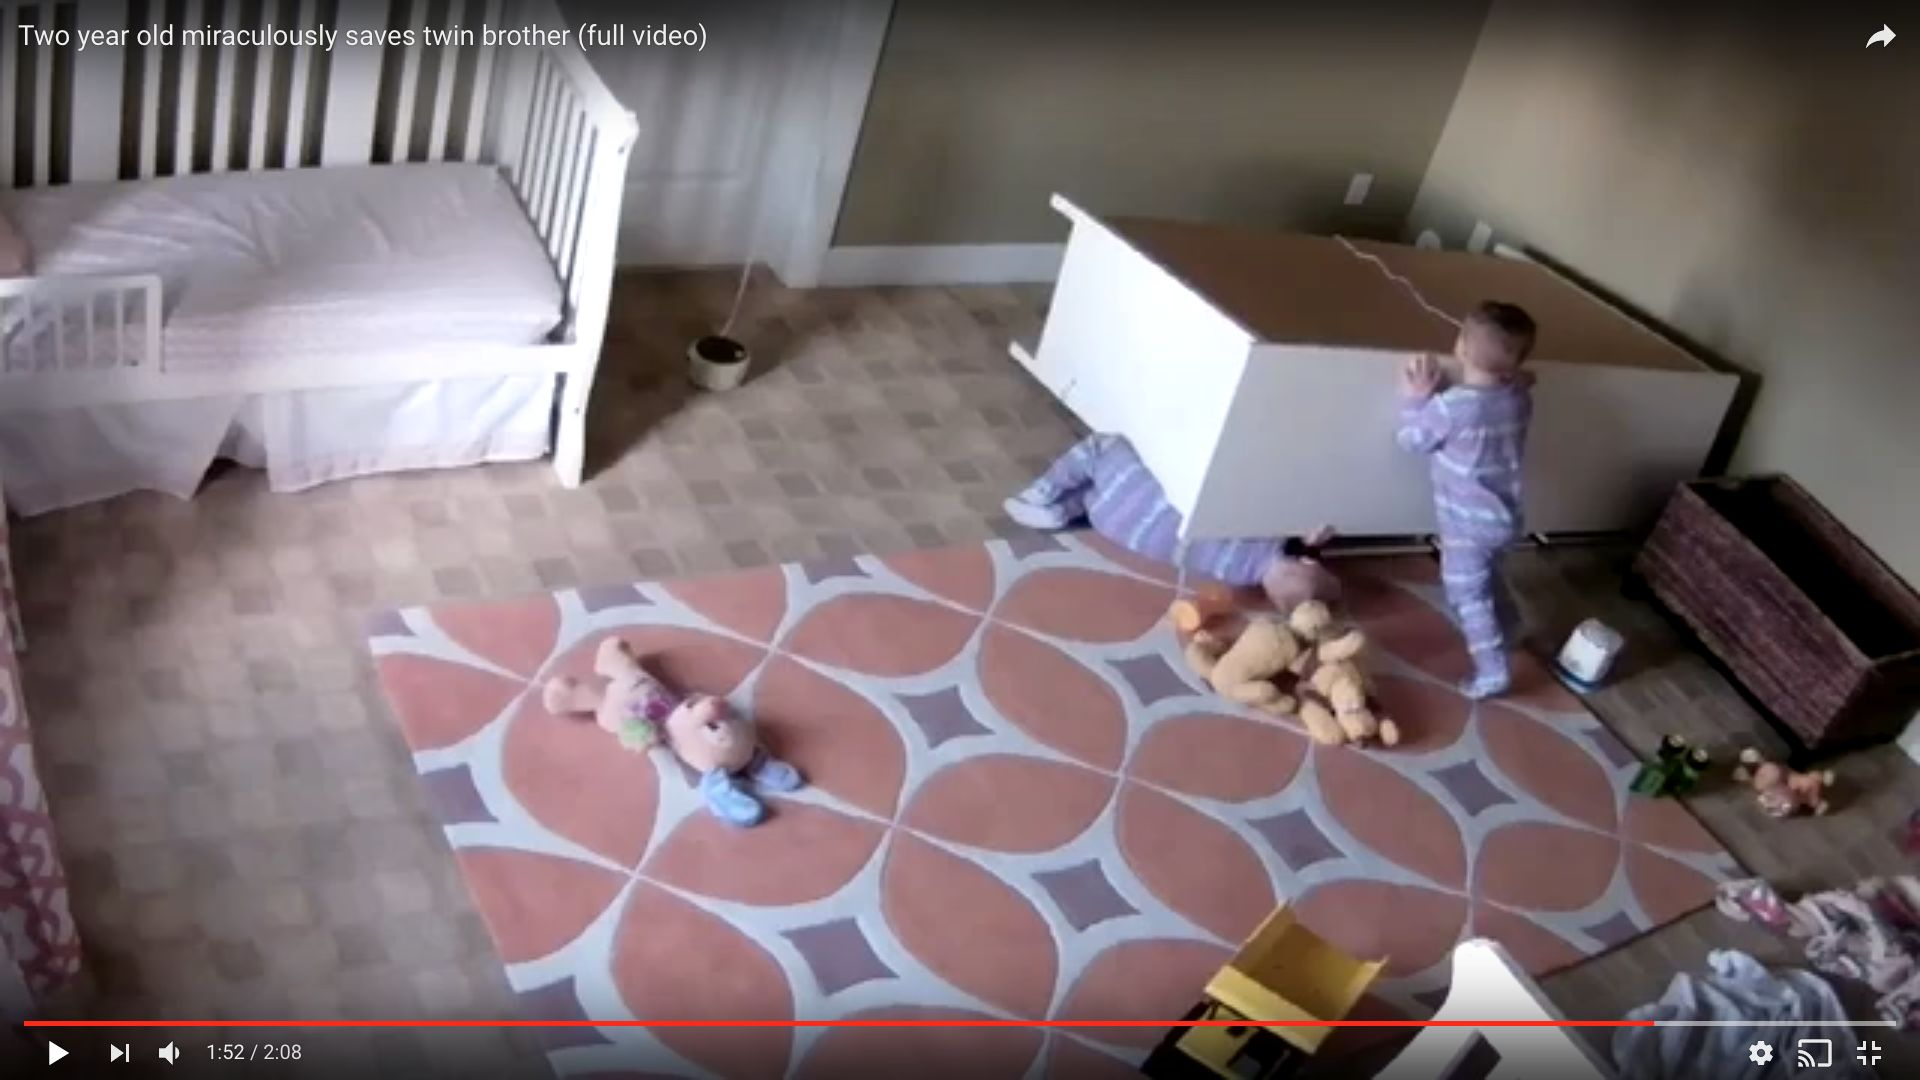 The 2-year-old boy is seen pushing a dresser off of his twin brother after it toppled on him in their...